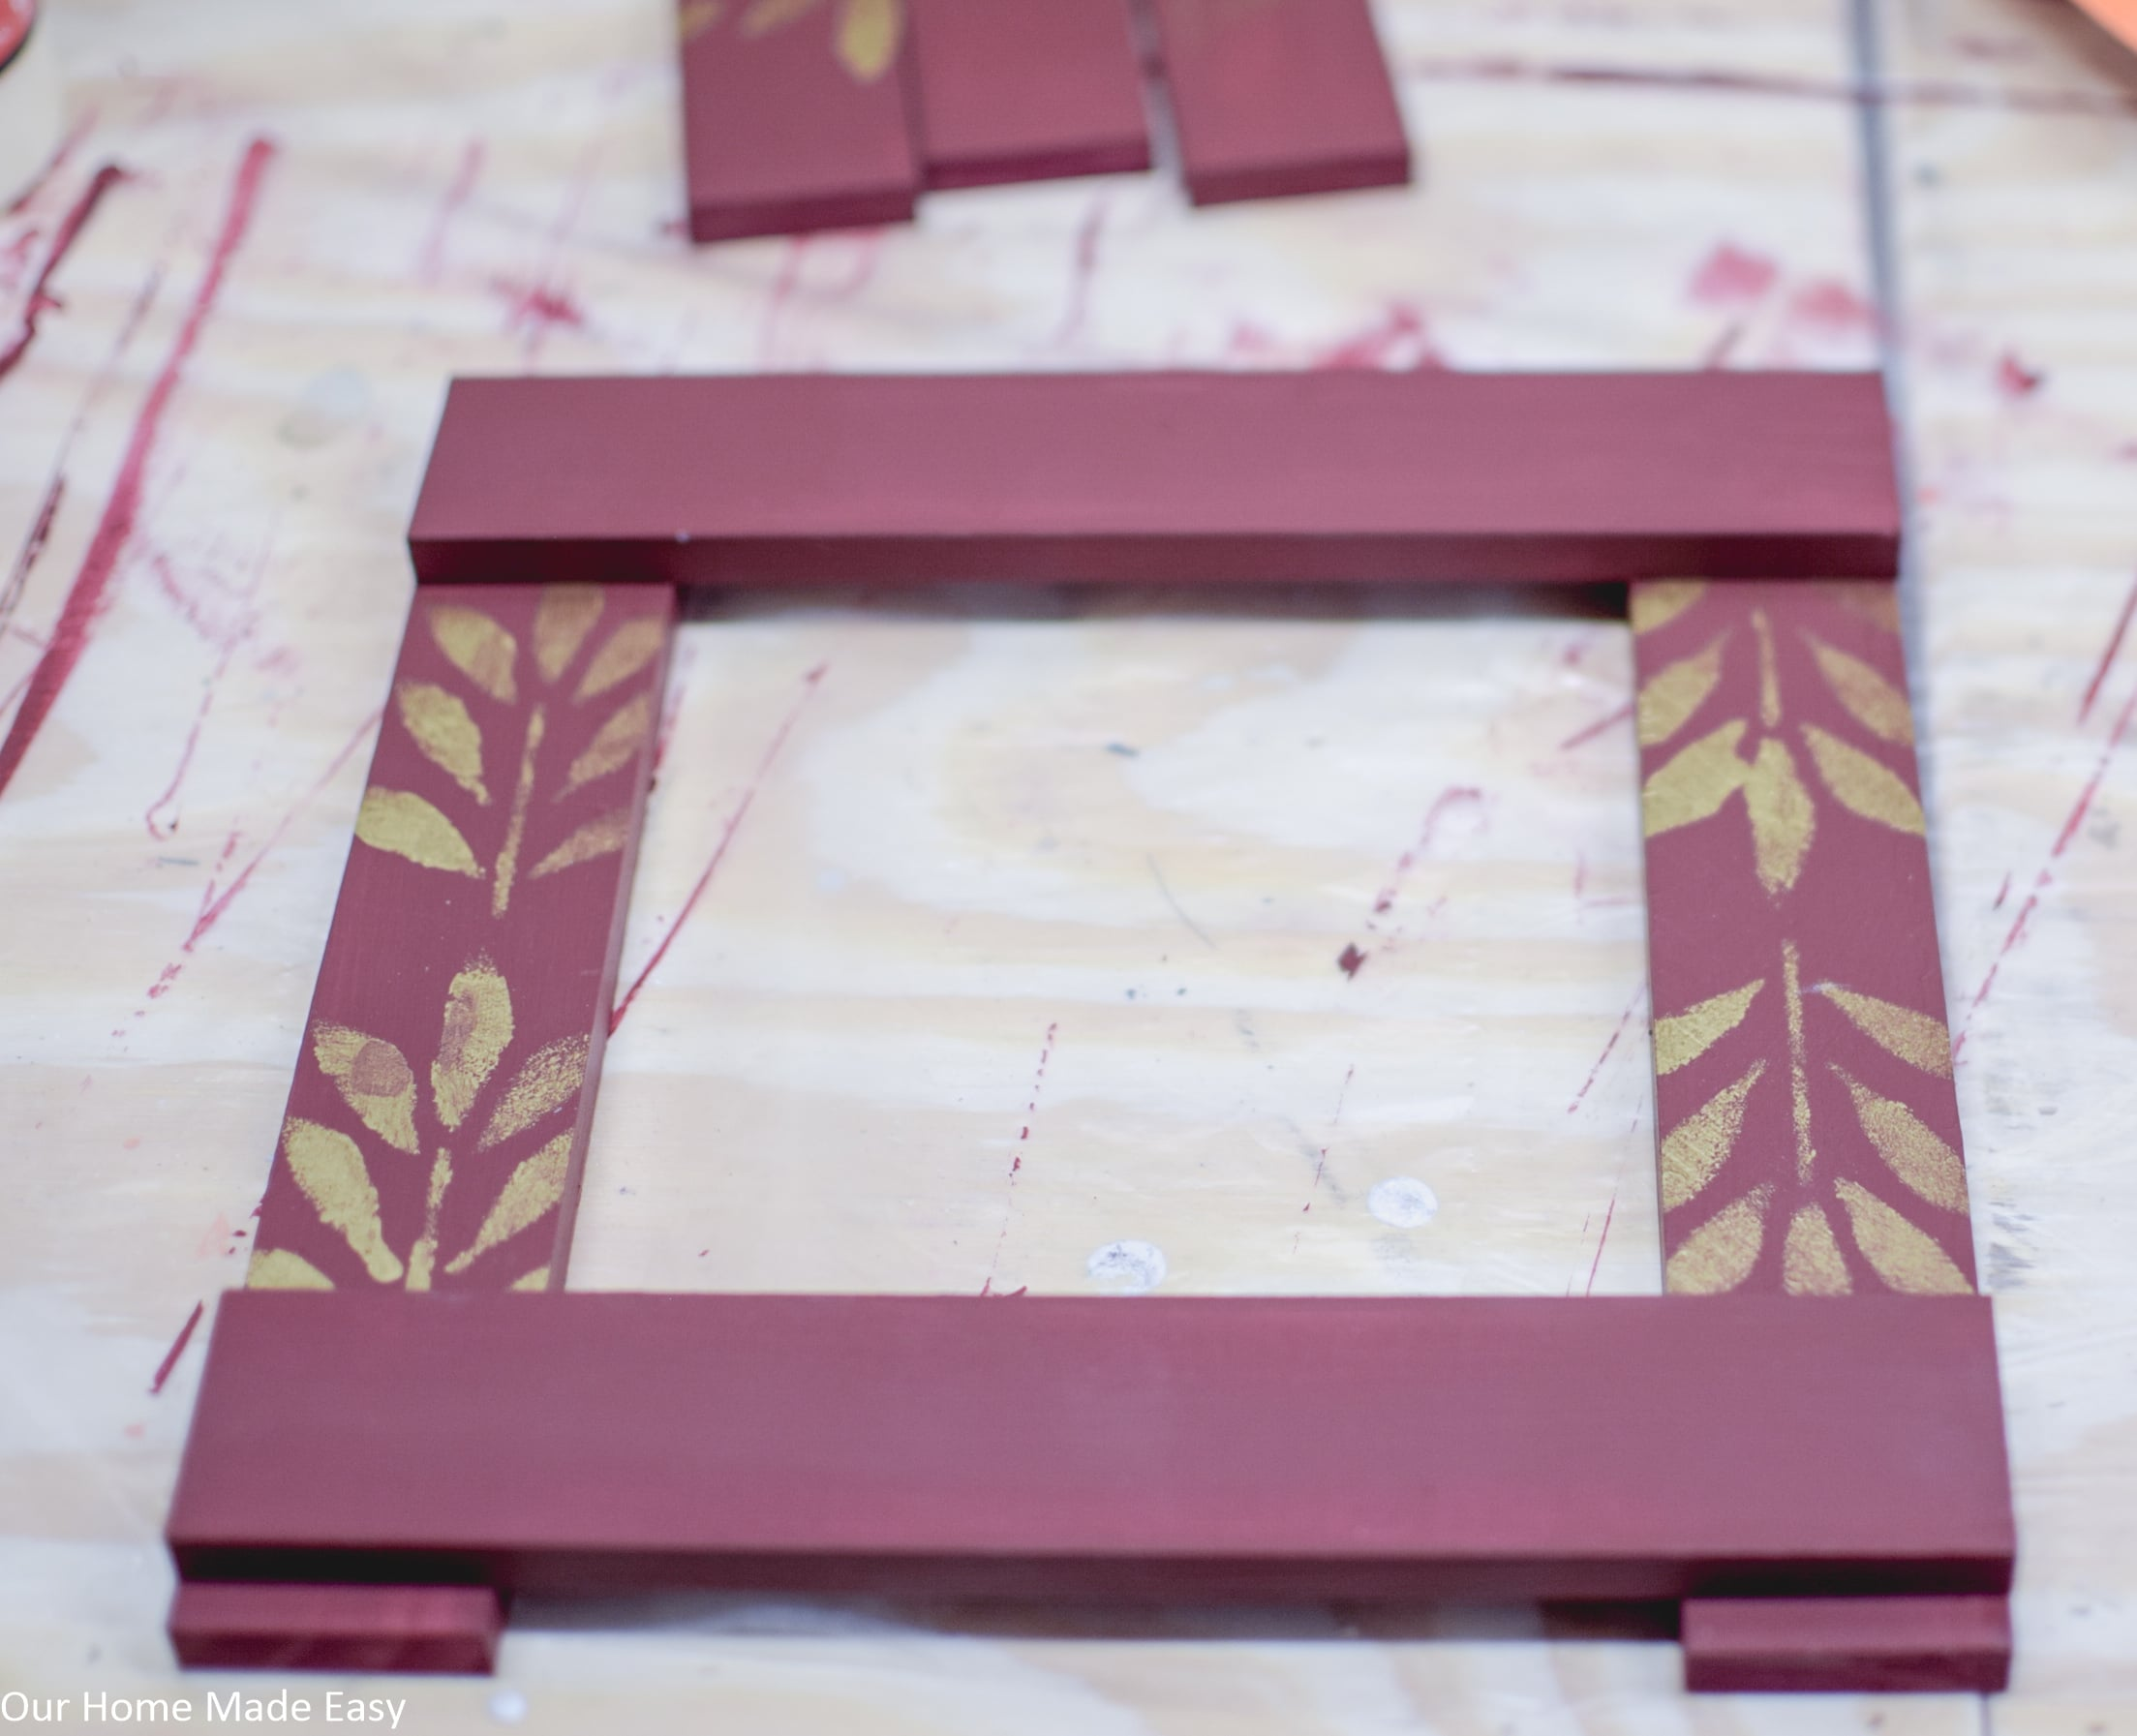 Begin gluing together the wooden slats to form the picture frame